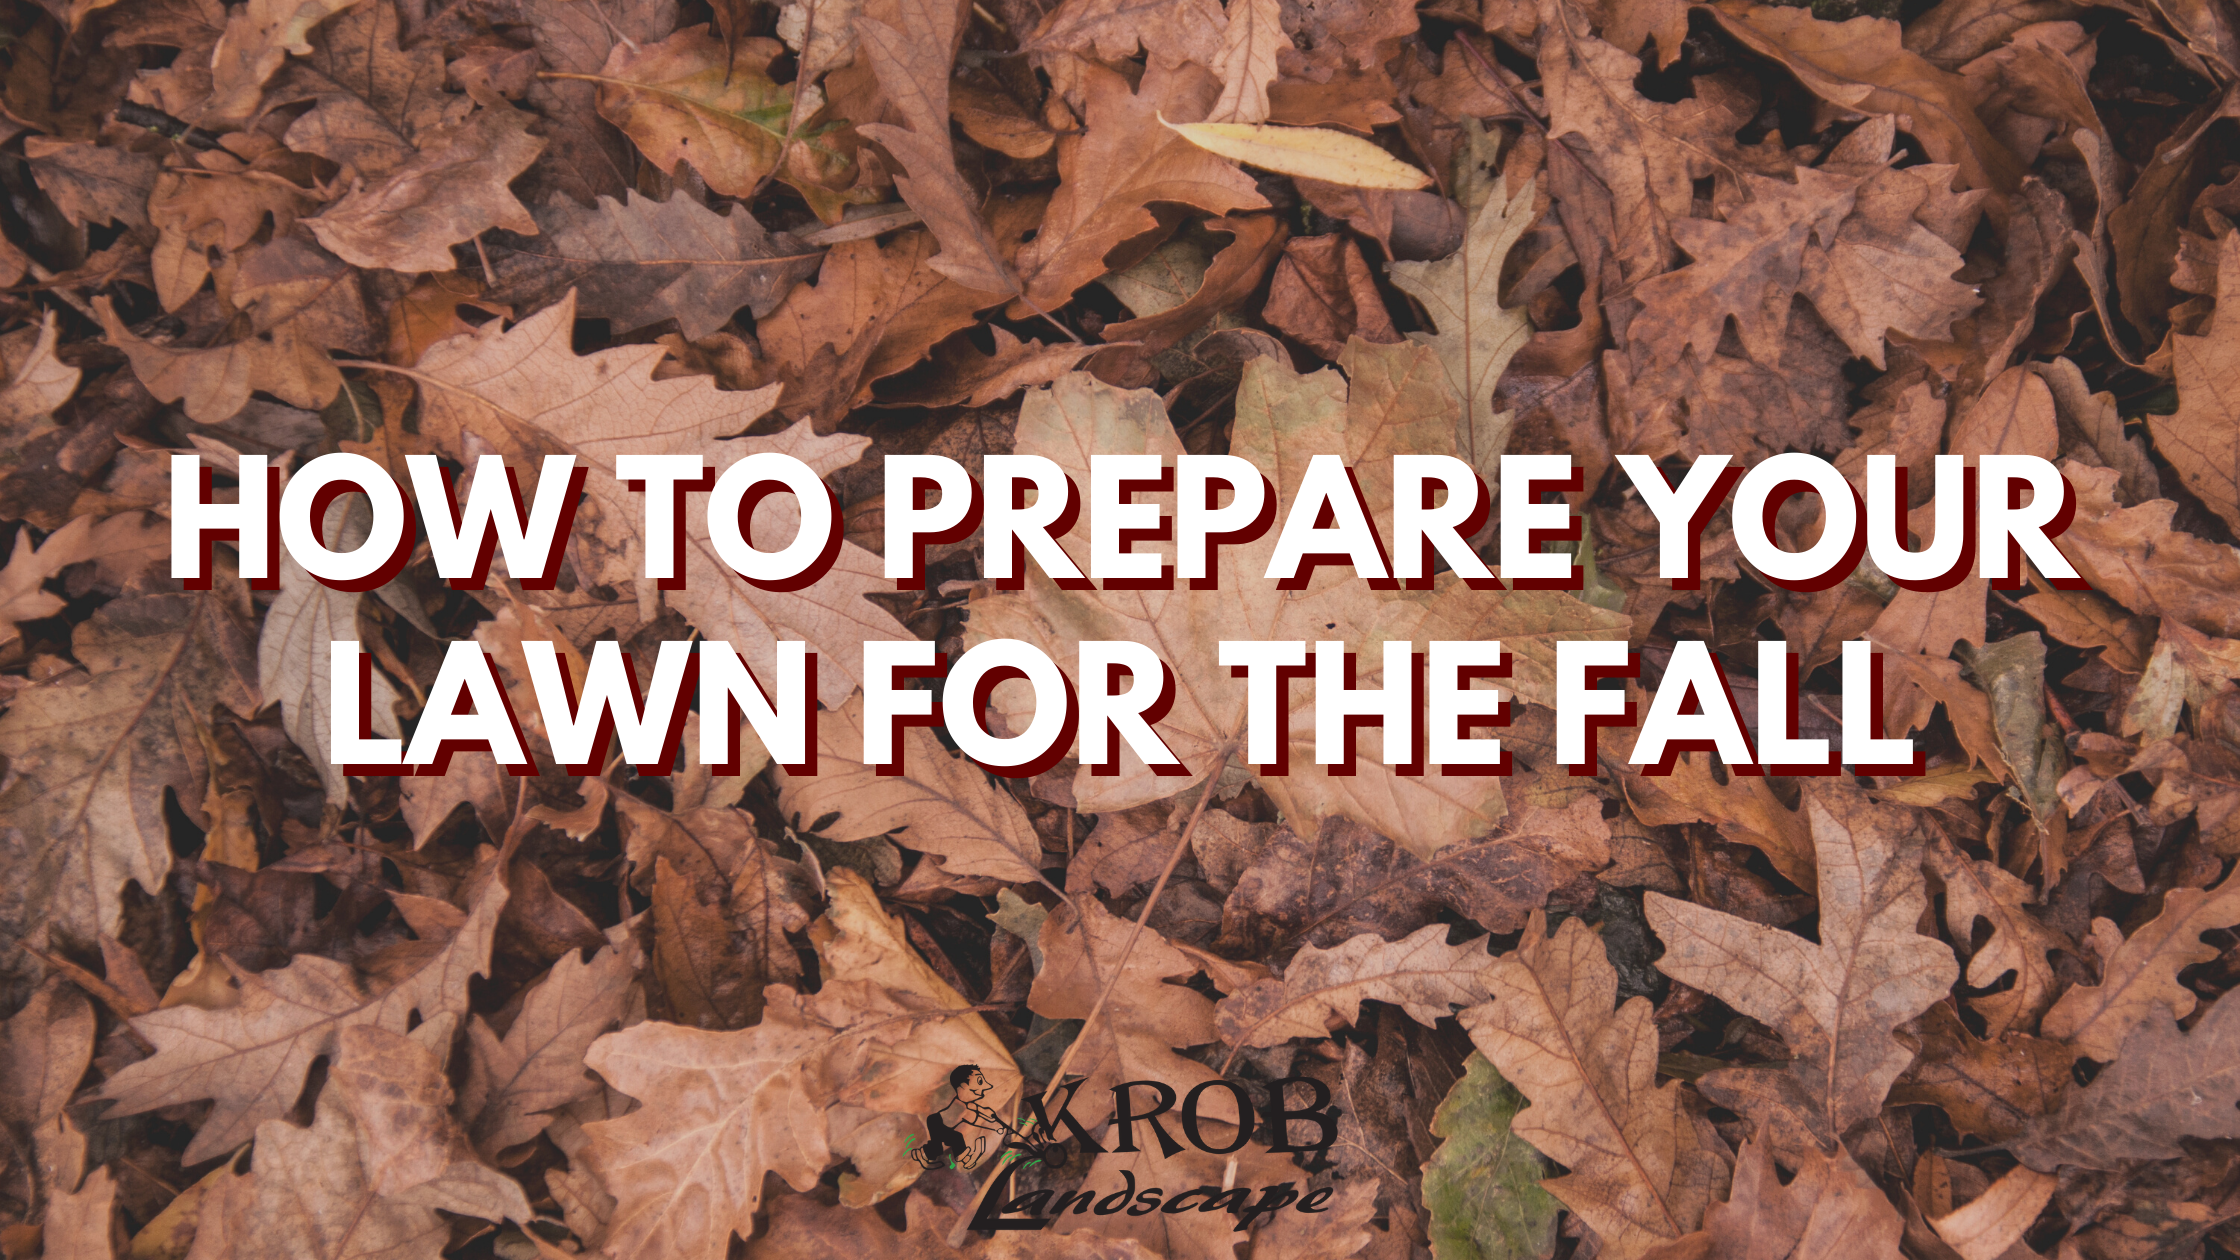 How To Prepare Your Lawn For The Fall.png